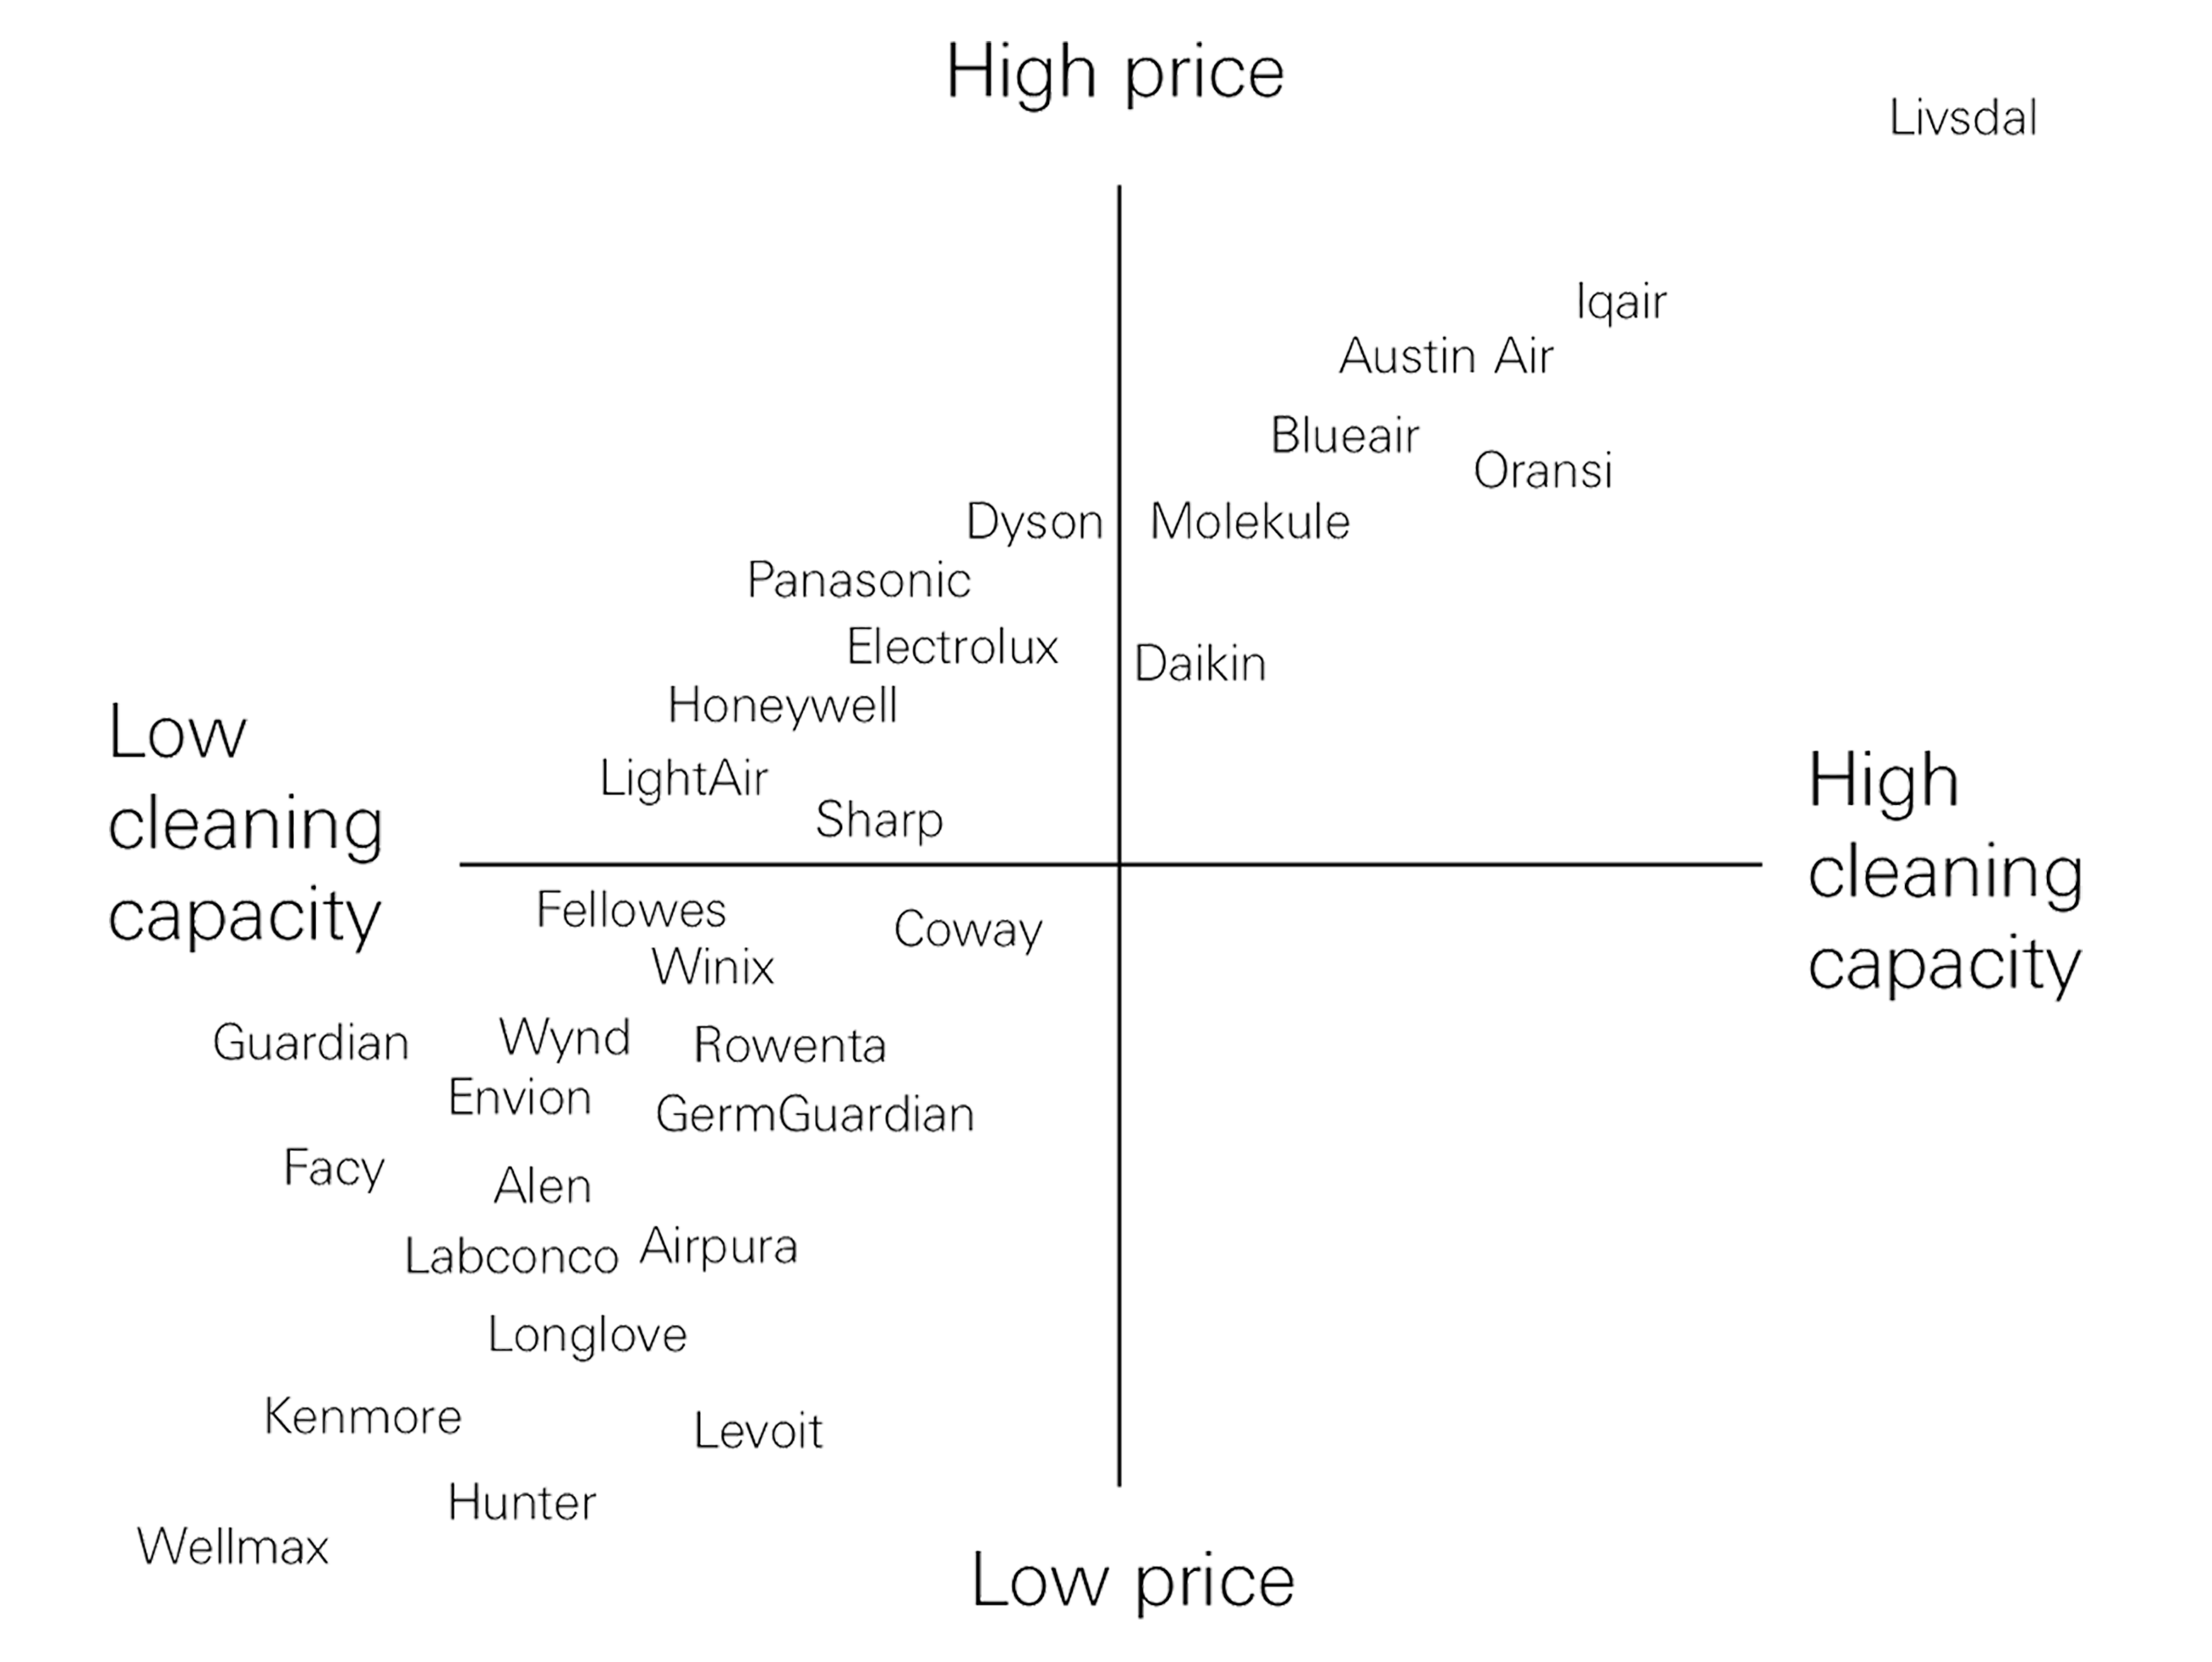 Price matrix picture